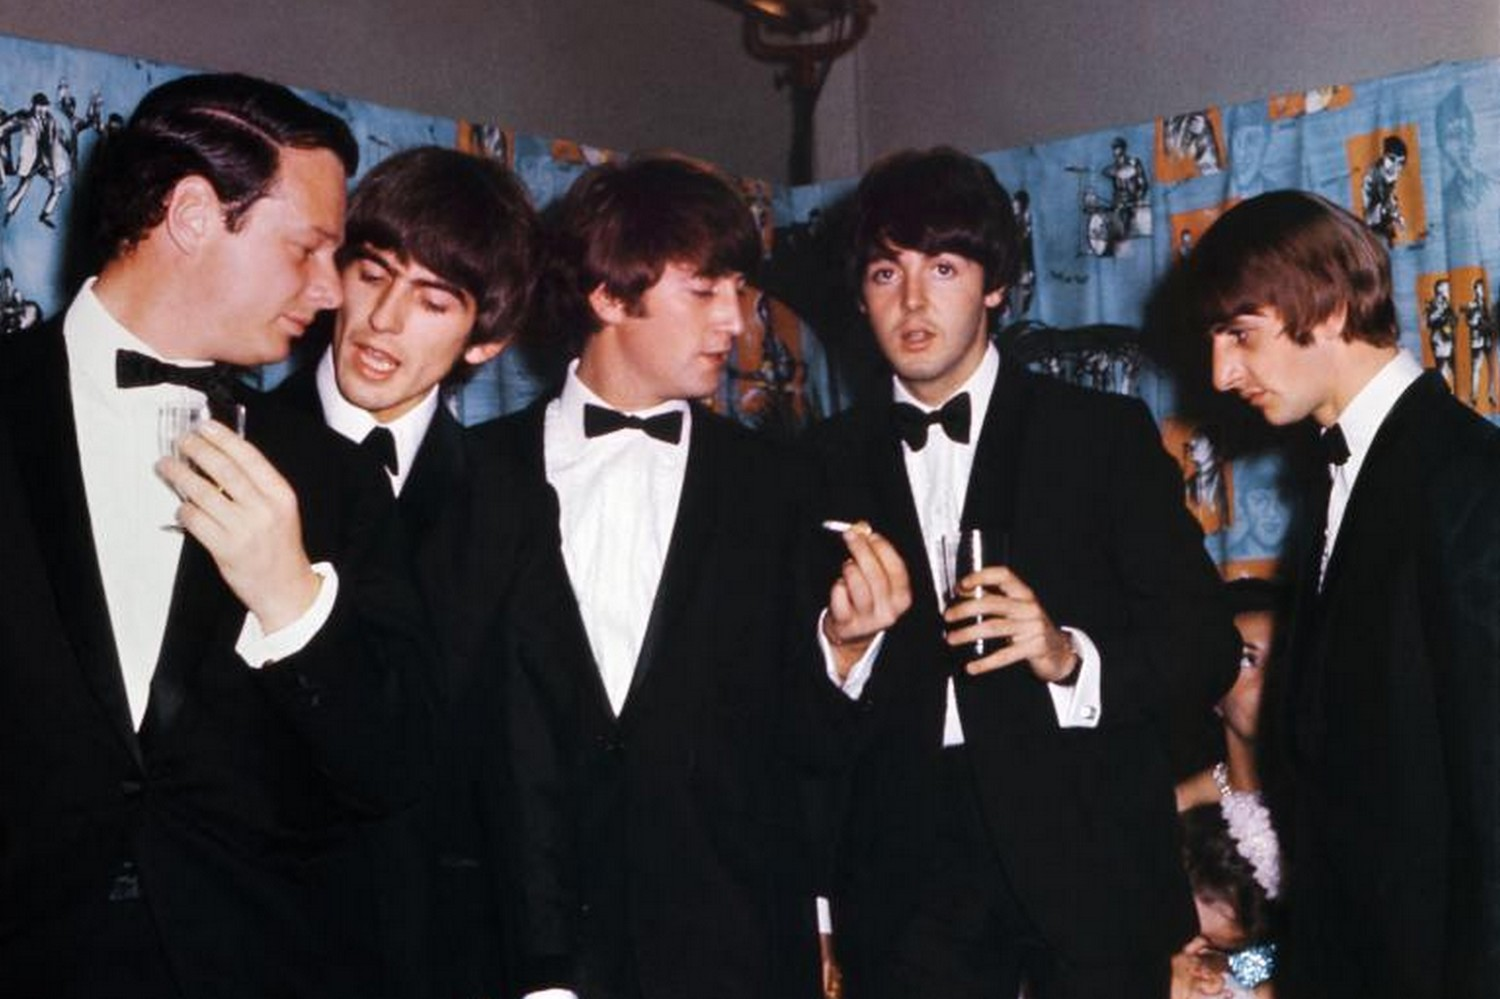 The Beatles - George Harrison, John Lennon, Paul McCartney and Ringo Starr - with manager Brian Epstein, left, at the premiere of